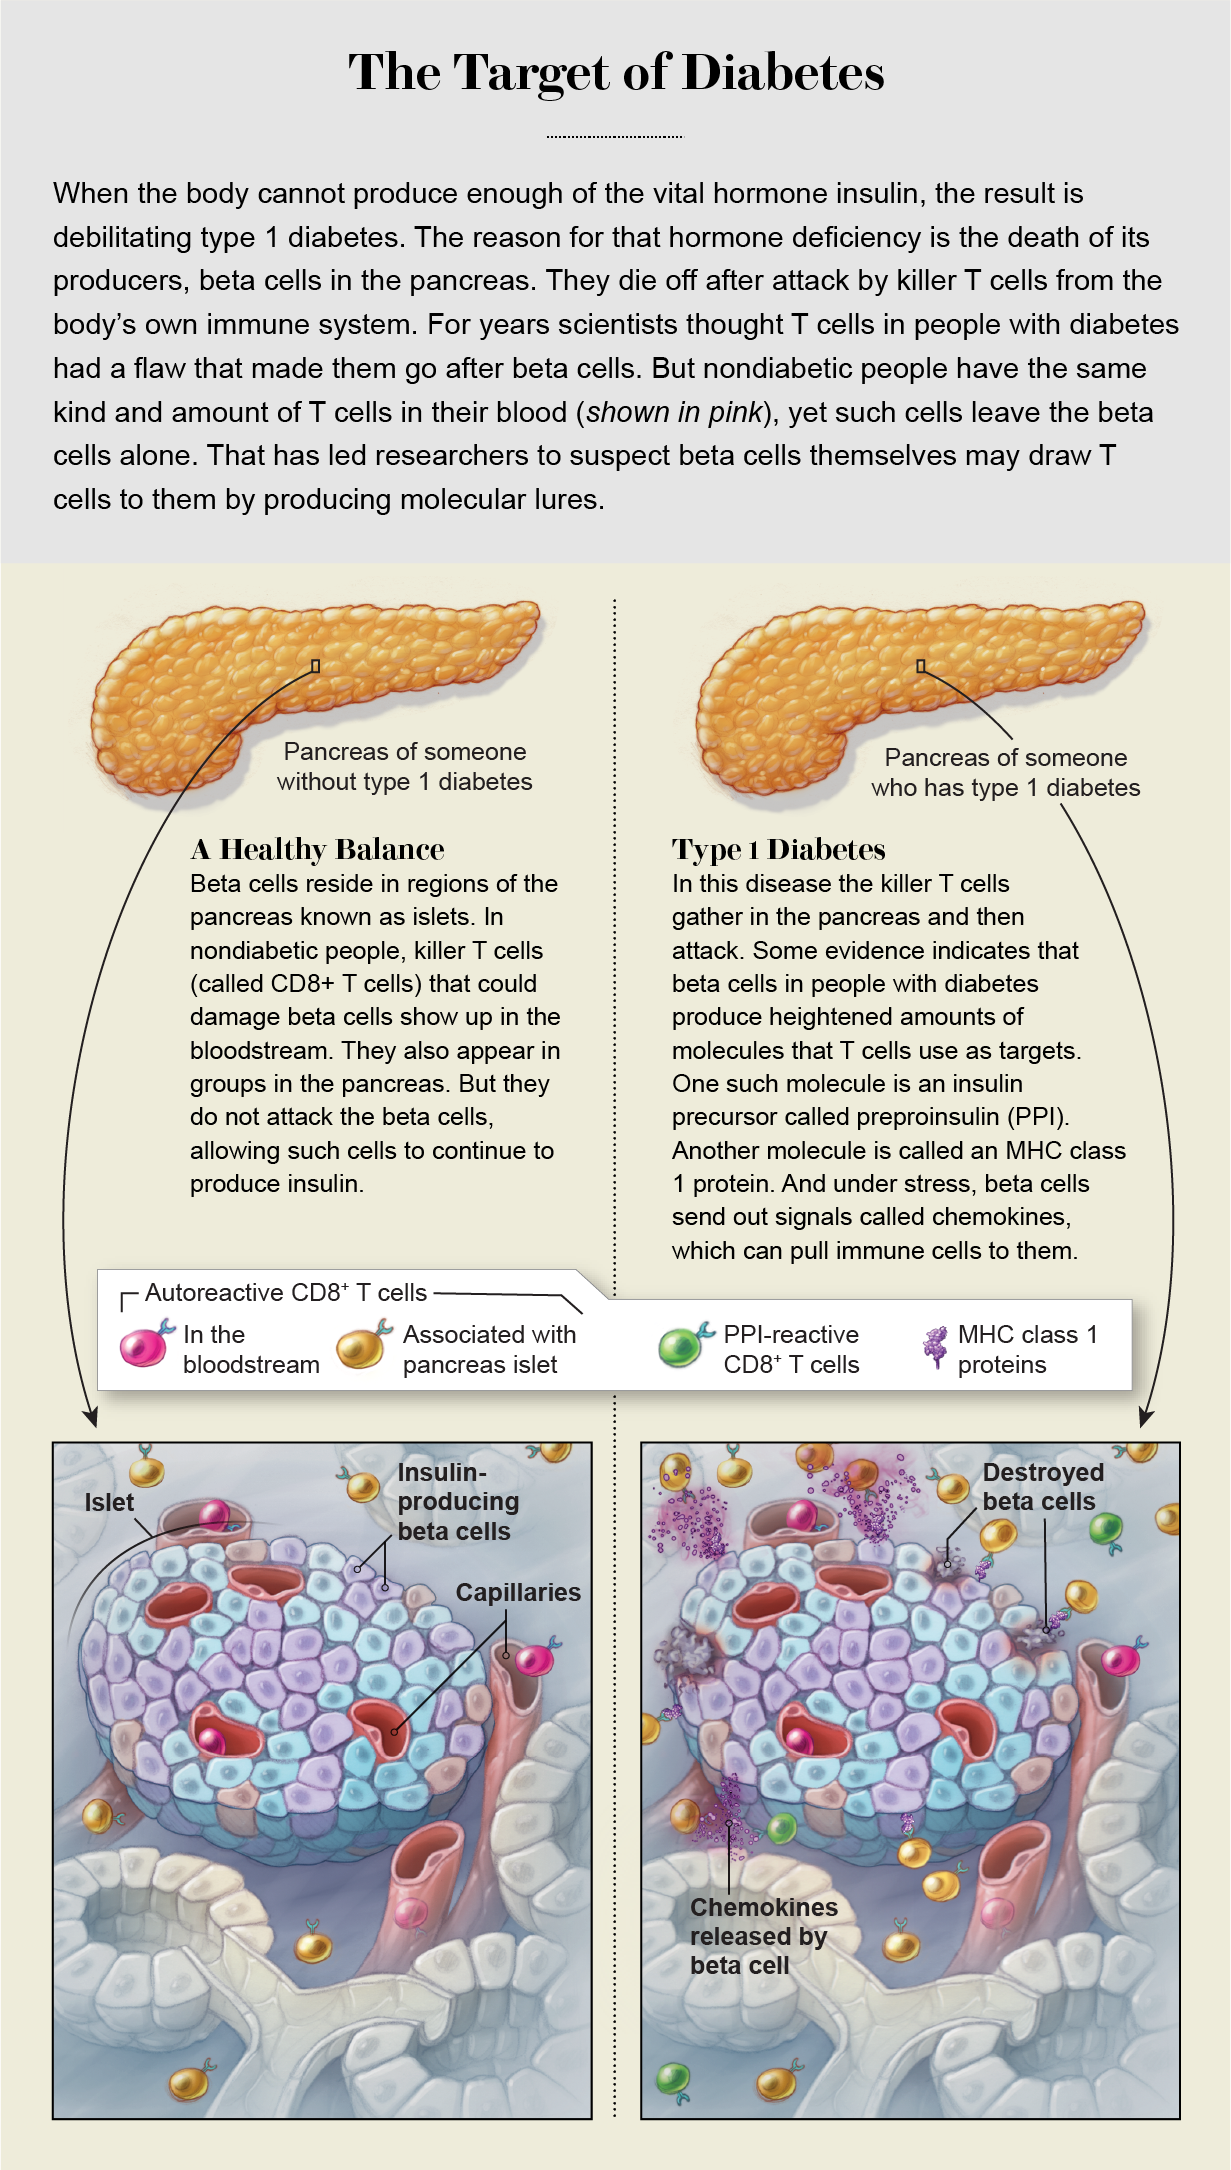 Graphic compares interactions of beta cells and killer T cells in pancreases of people with and without type 1 diabetes.